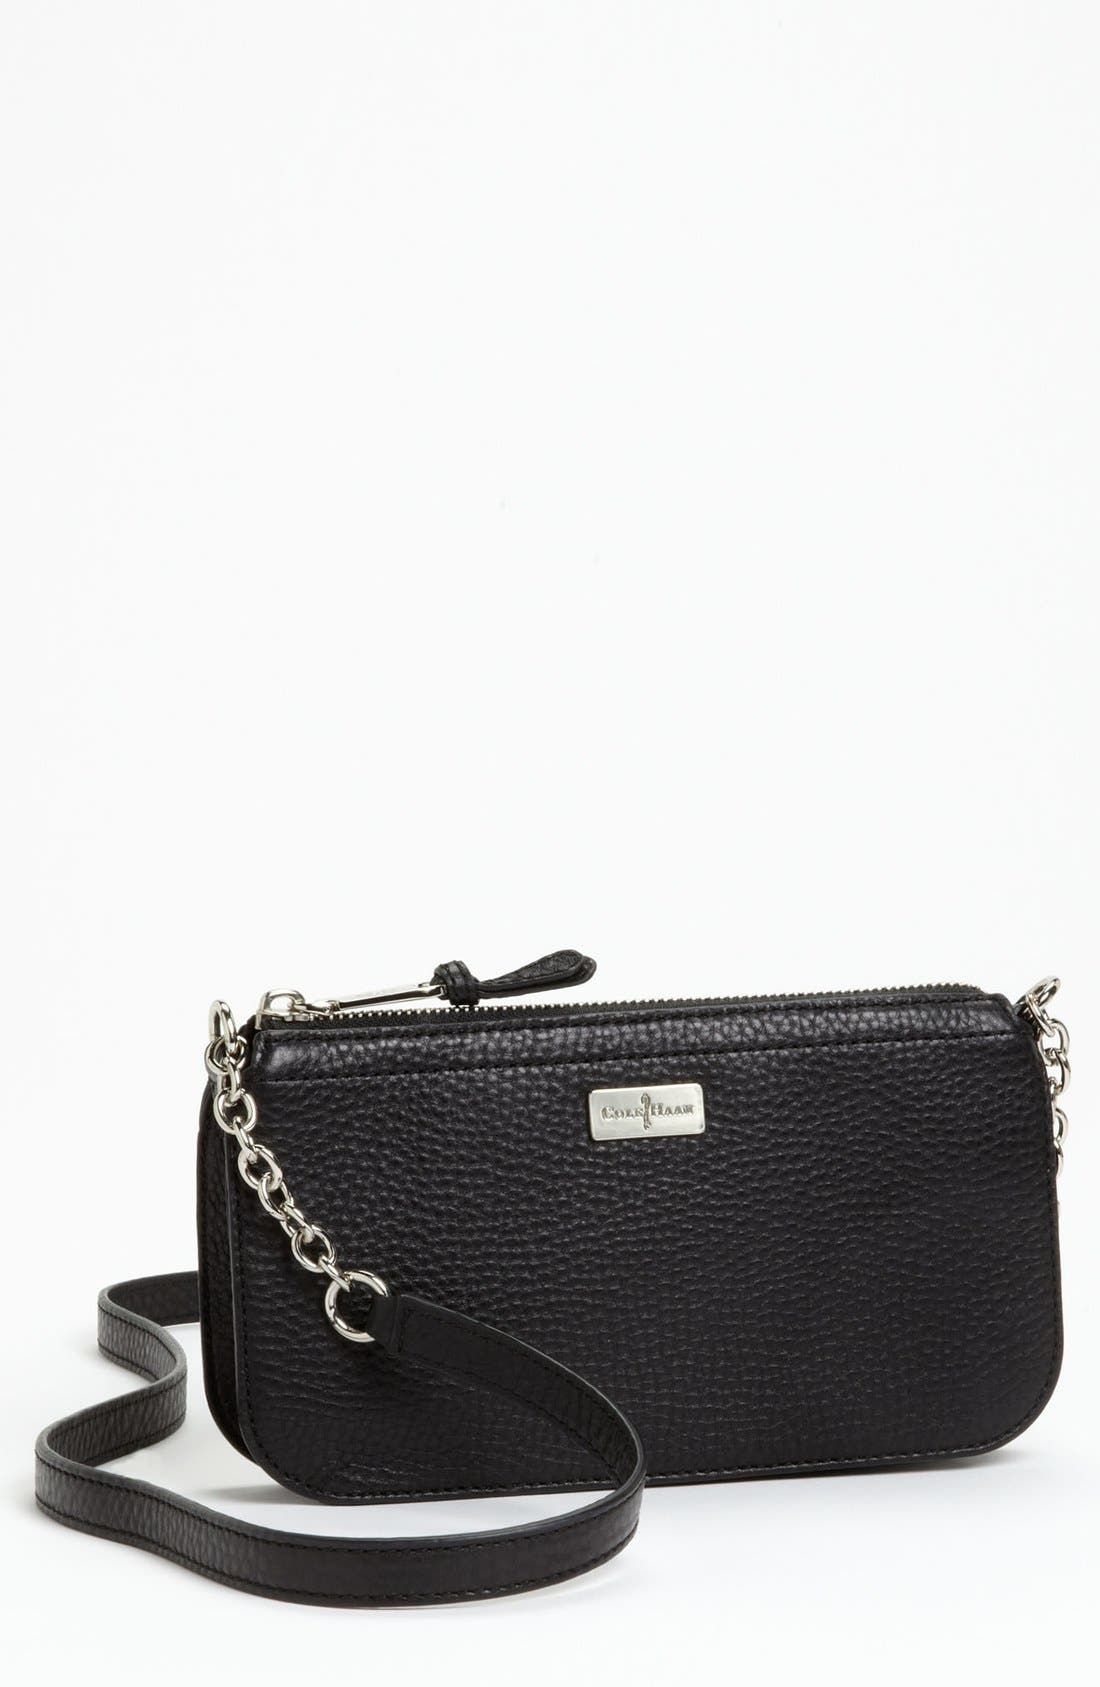 Alternate Image 1 Selected - Cole Haan 'Village' Zip Top Crossbody Bag